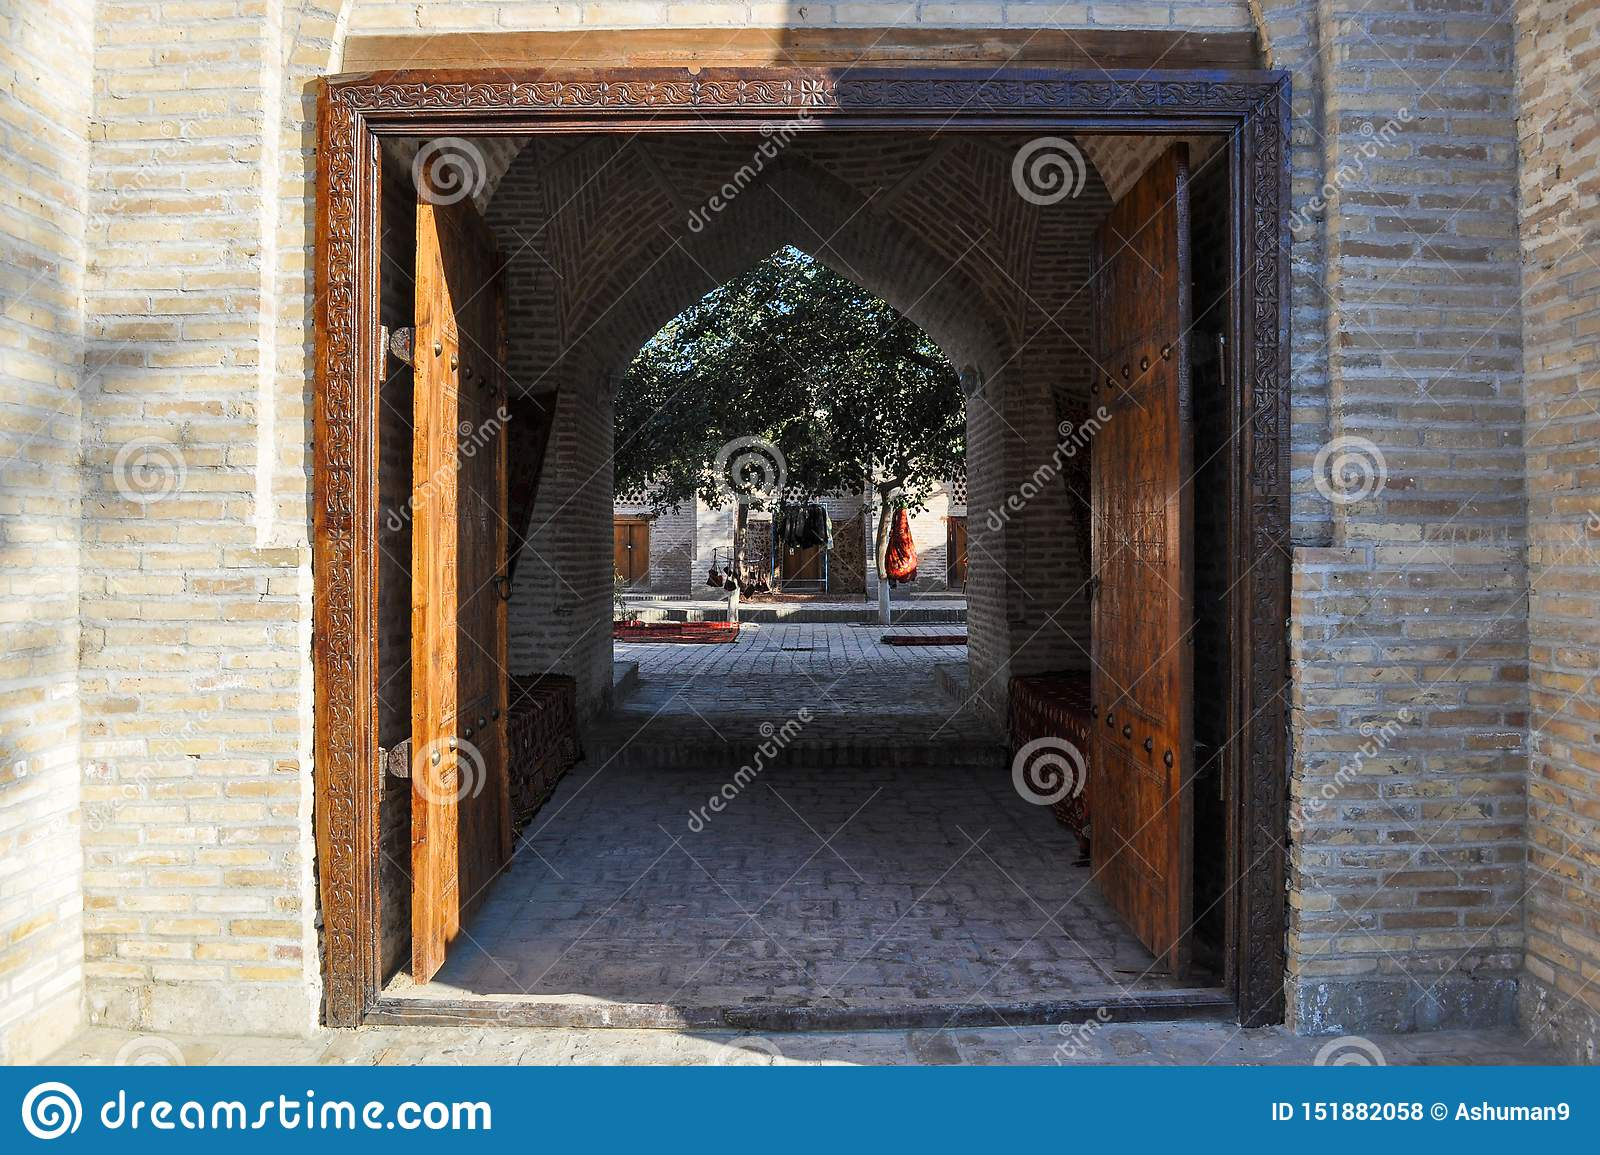 Entrance to the courtyard of the old building of Bukhara.